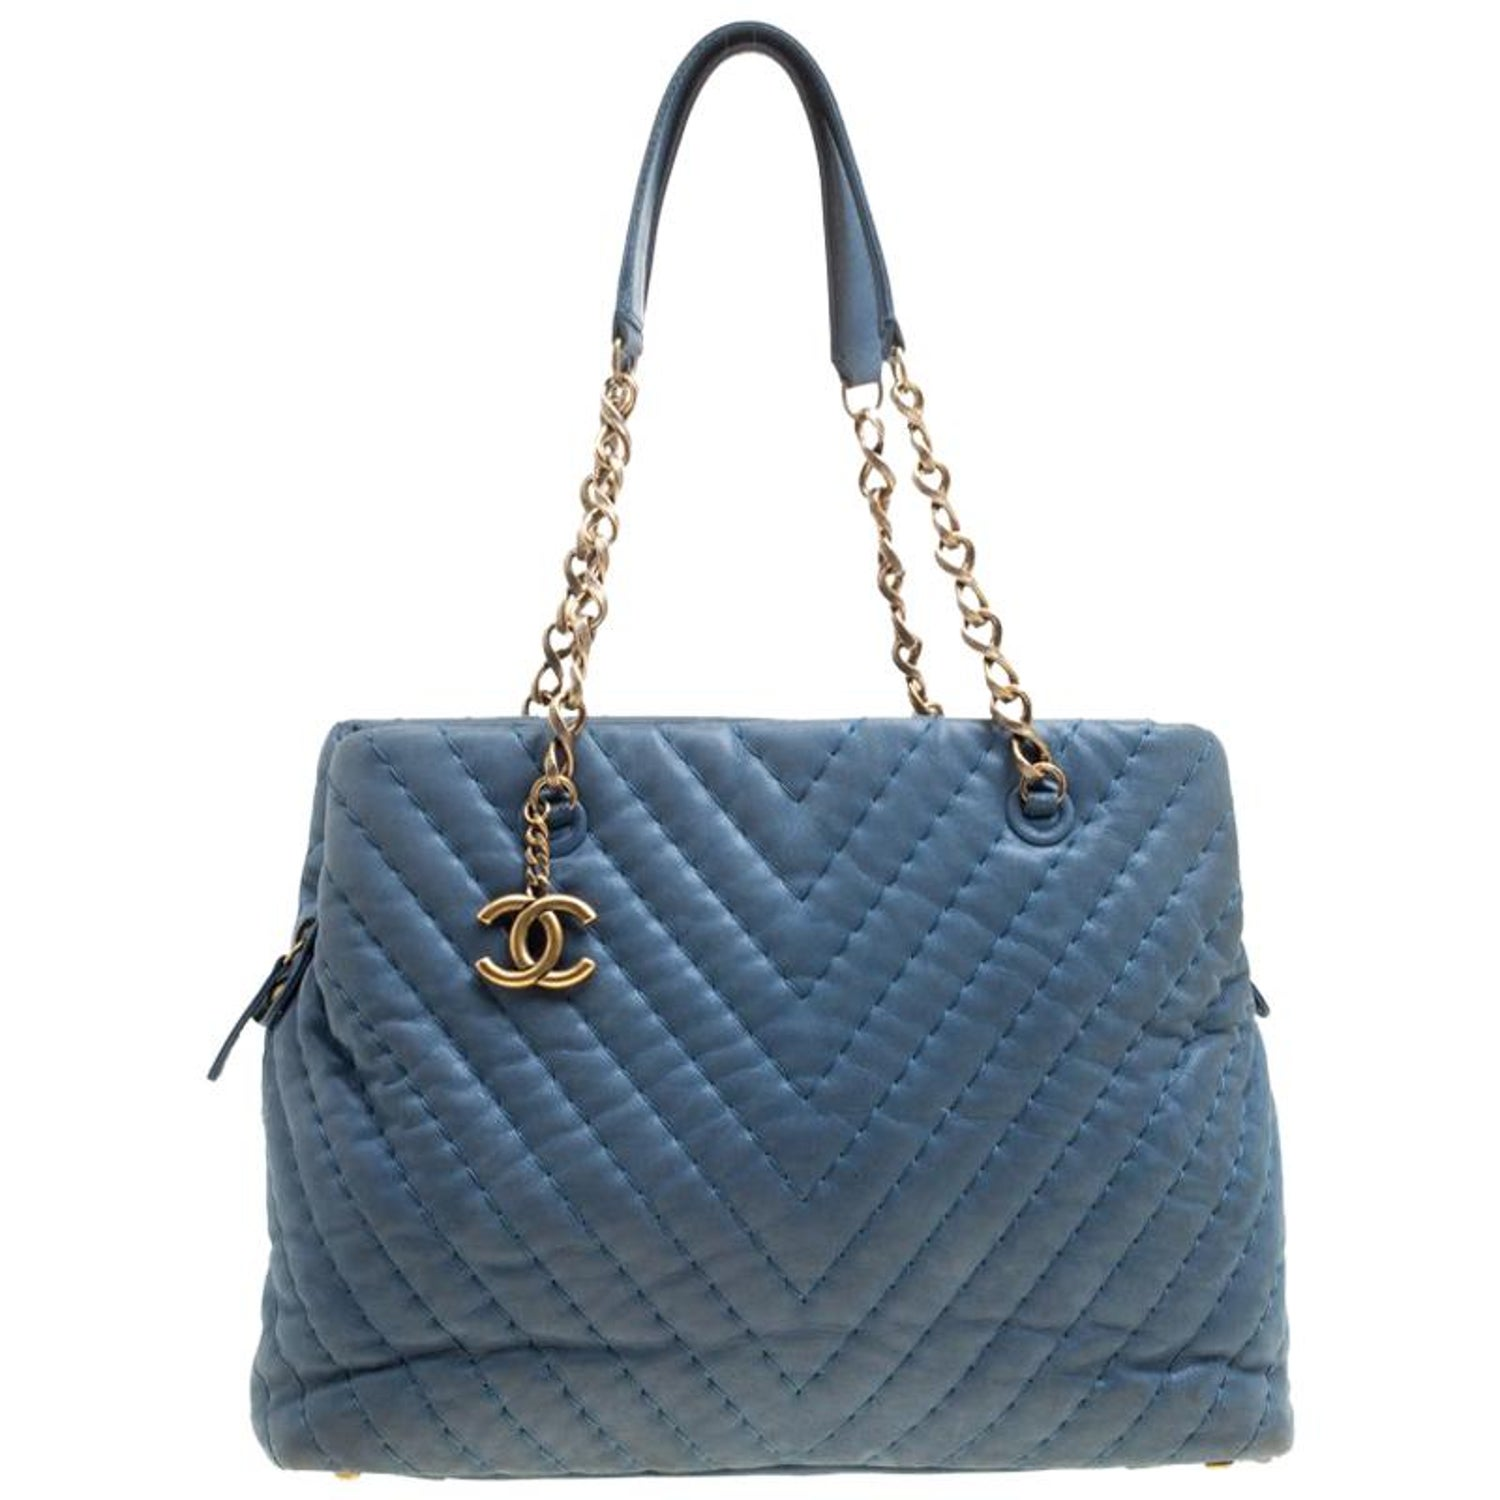 c7ee2e3ef752 Chanel Blue Iridescent Chevron Quilted Leather Large Surpique Tote For Sale  at 1stdibs